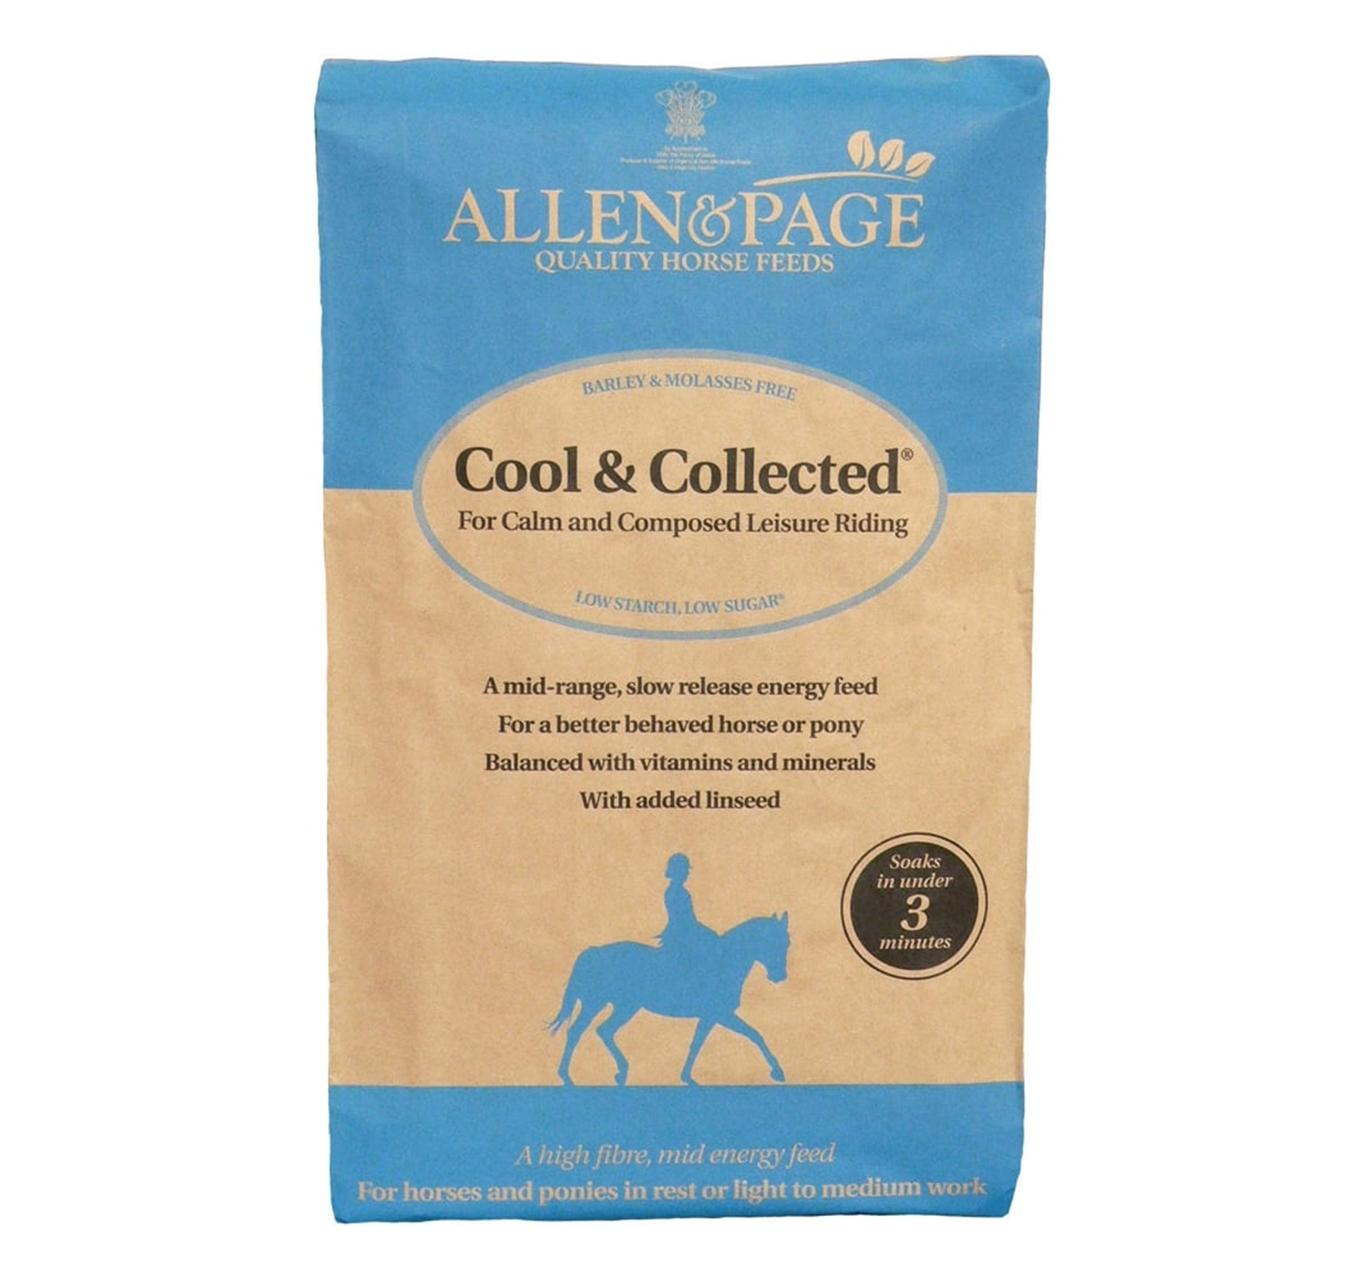 A&P Cool & Collected 20kg